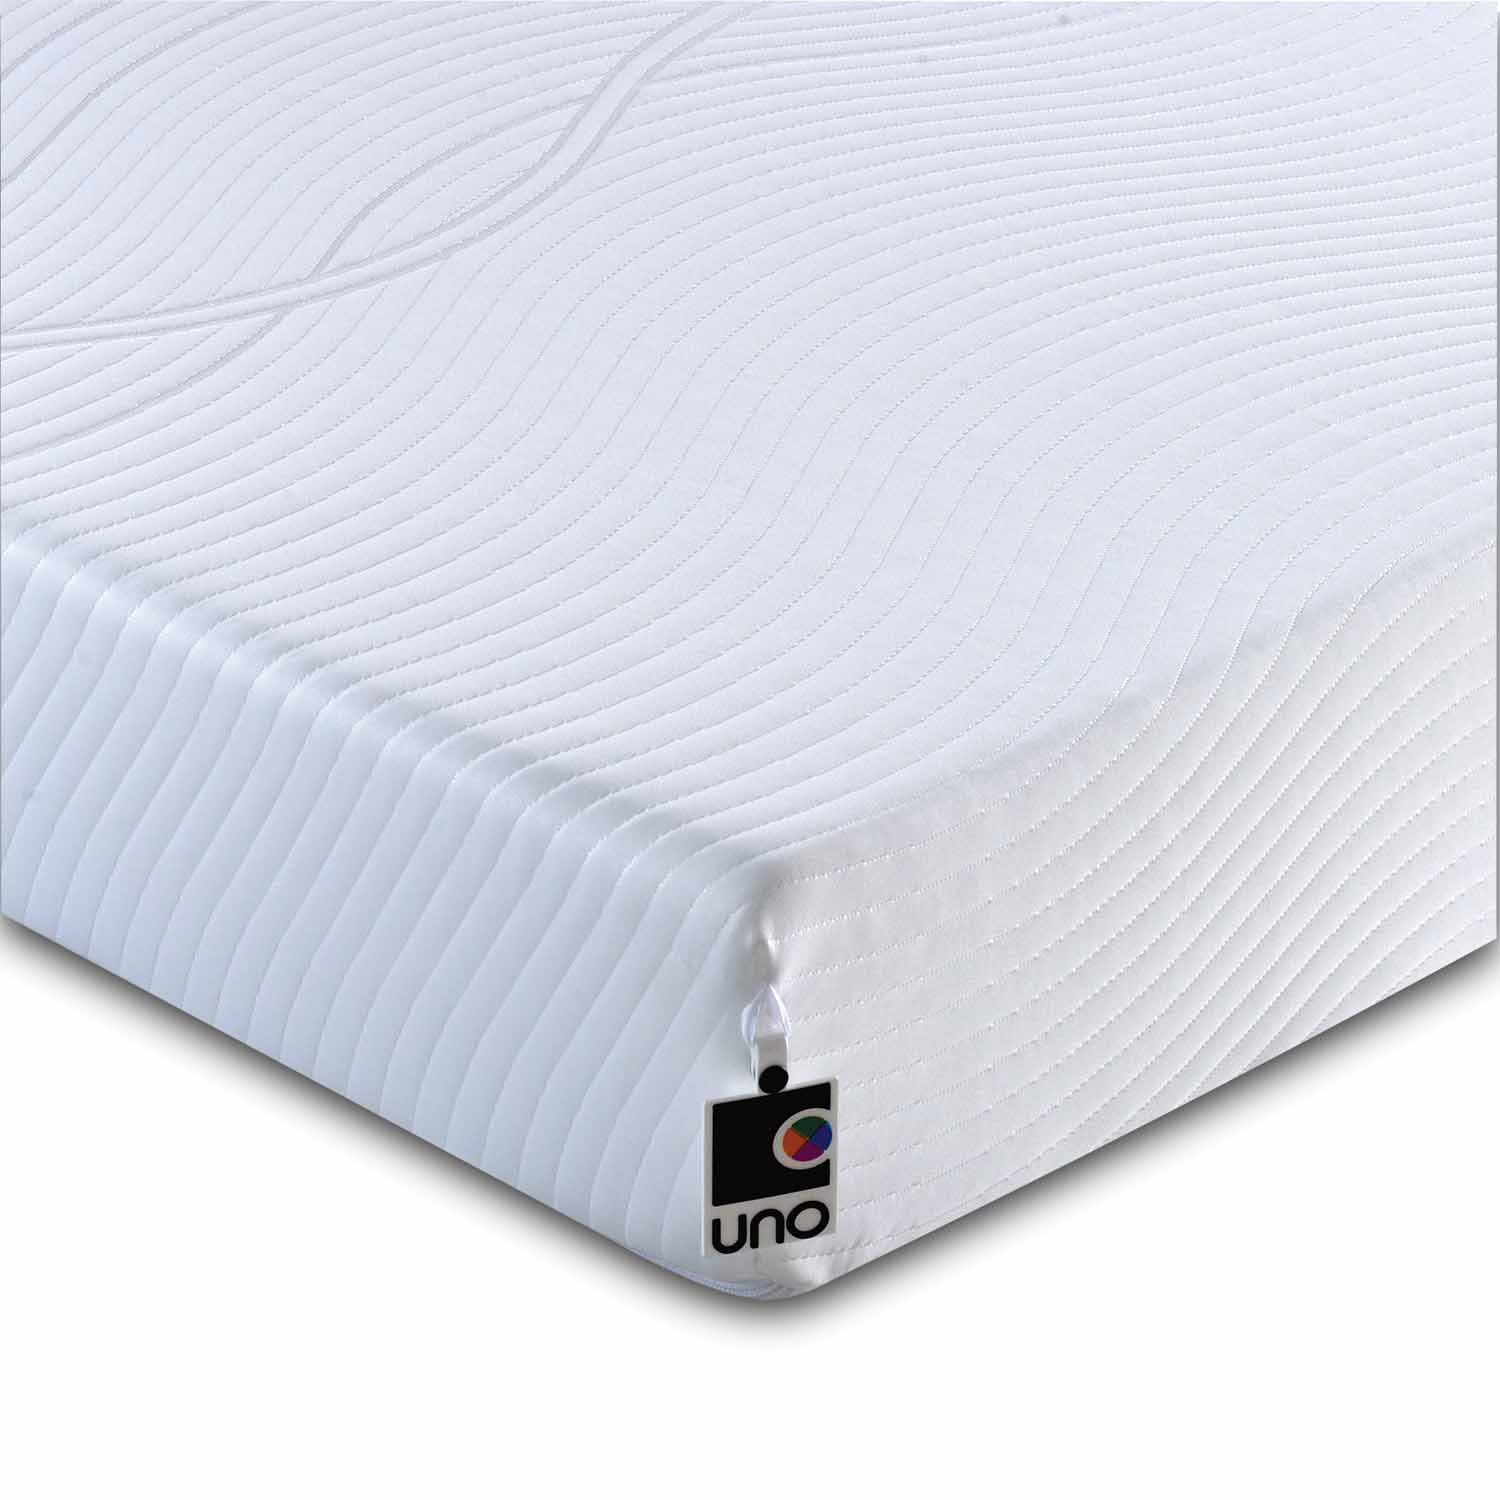 Photo of Uno revive 4ft6 double 16cm deep mattress